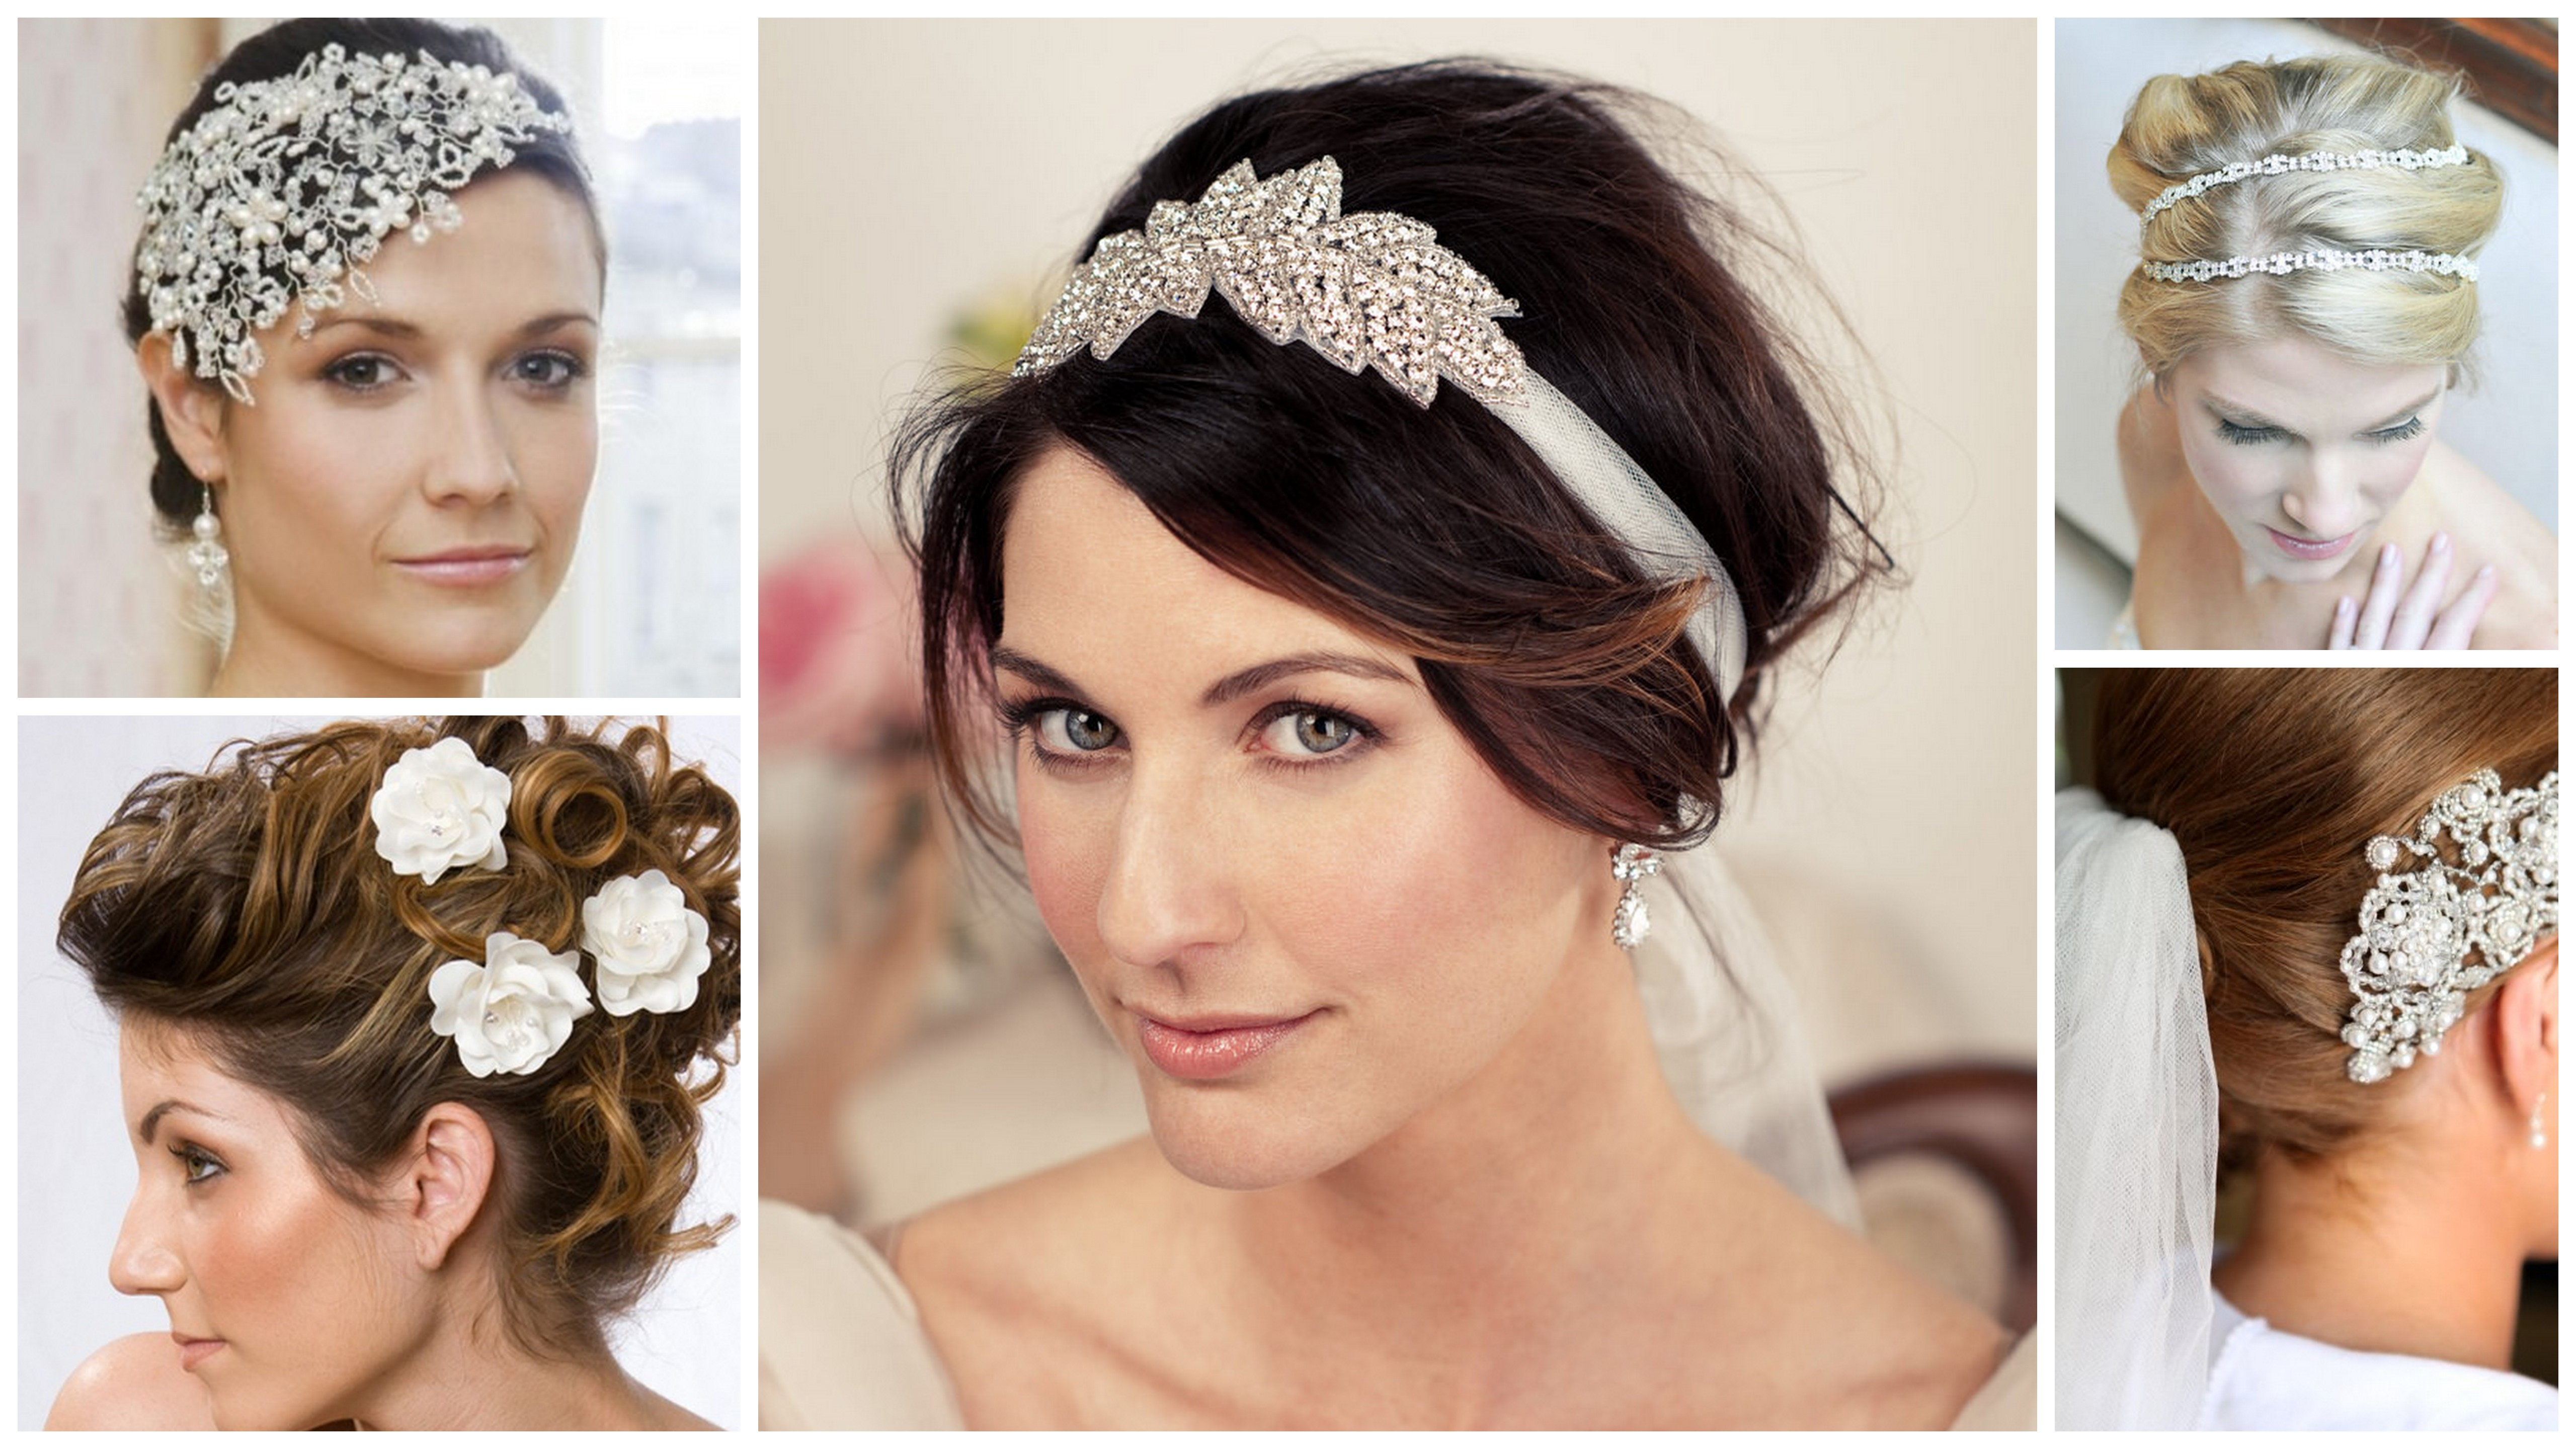 Summer Bridal Services: Preparing for the Wedding Season